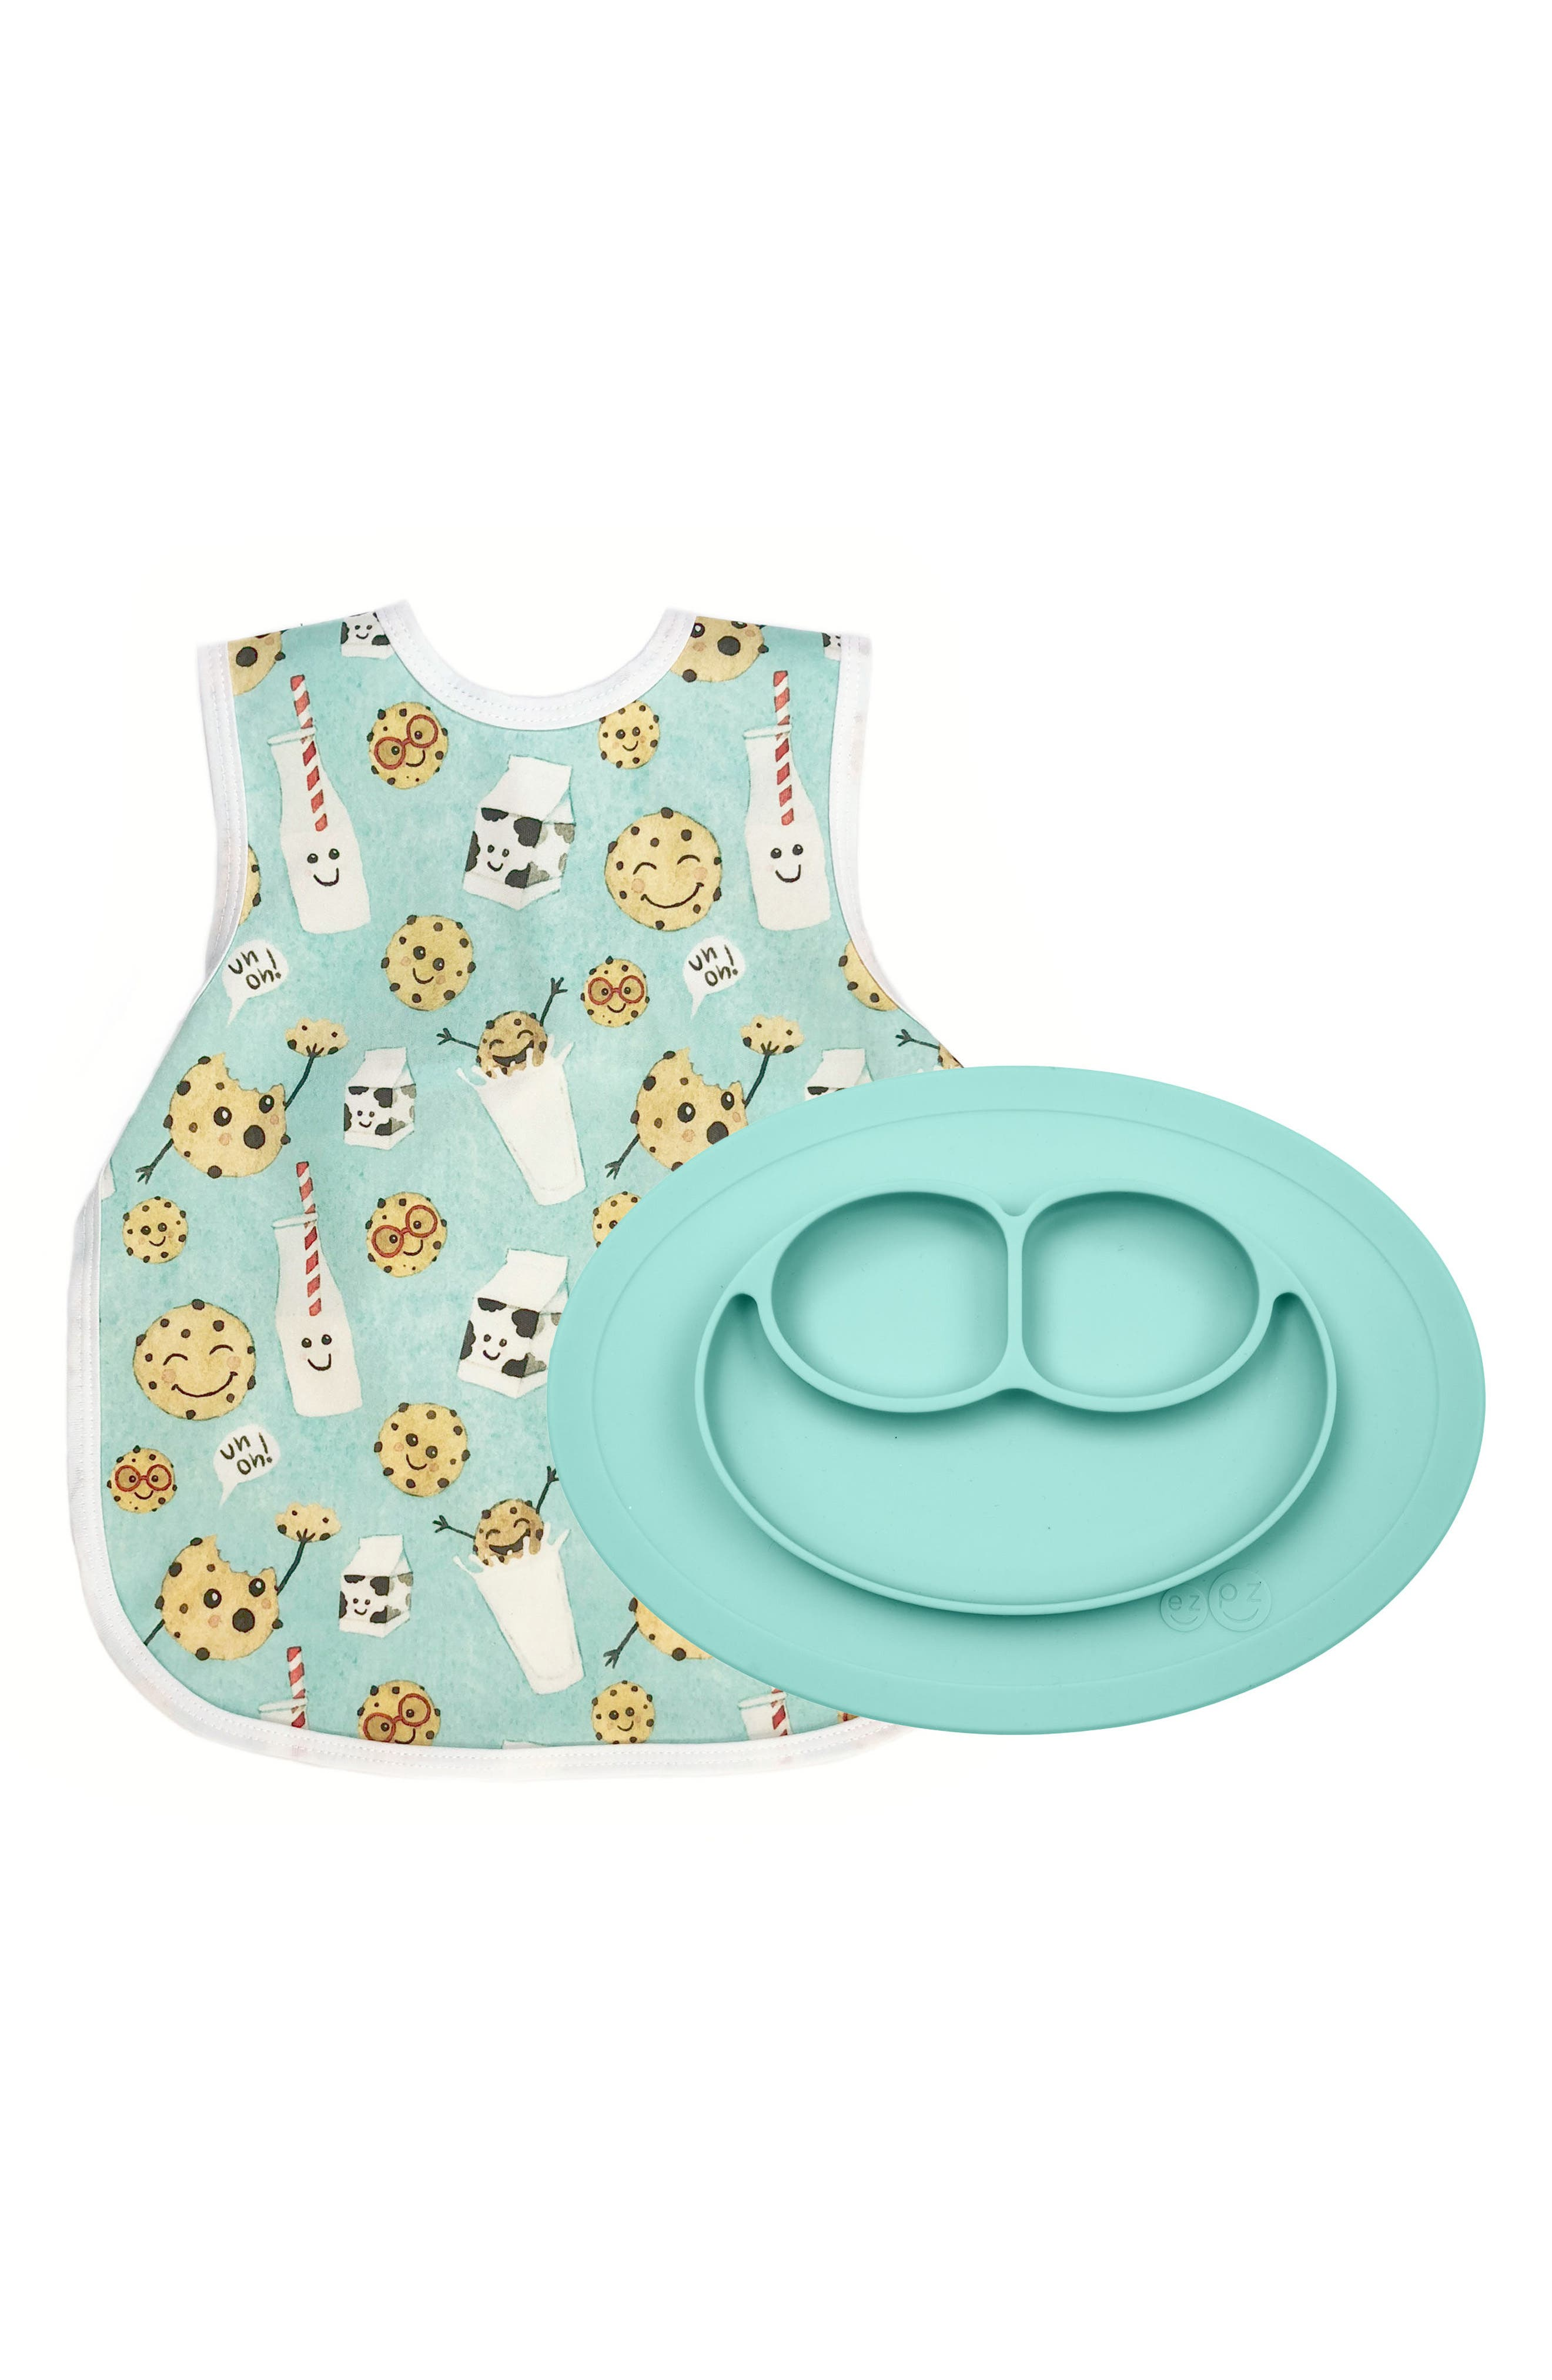 Cookies Bapron & Mini Silicone Feeding Mat,                             Main thumbnail 1, color,                             AQUA